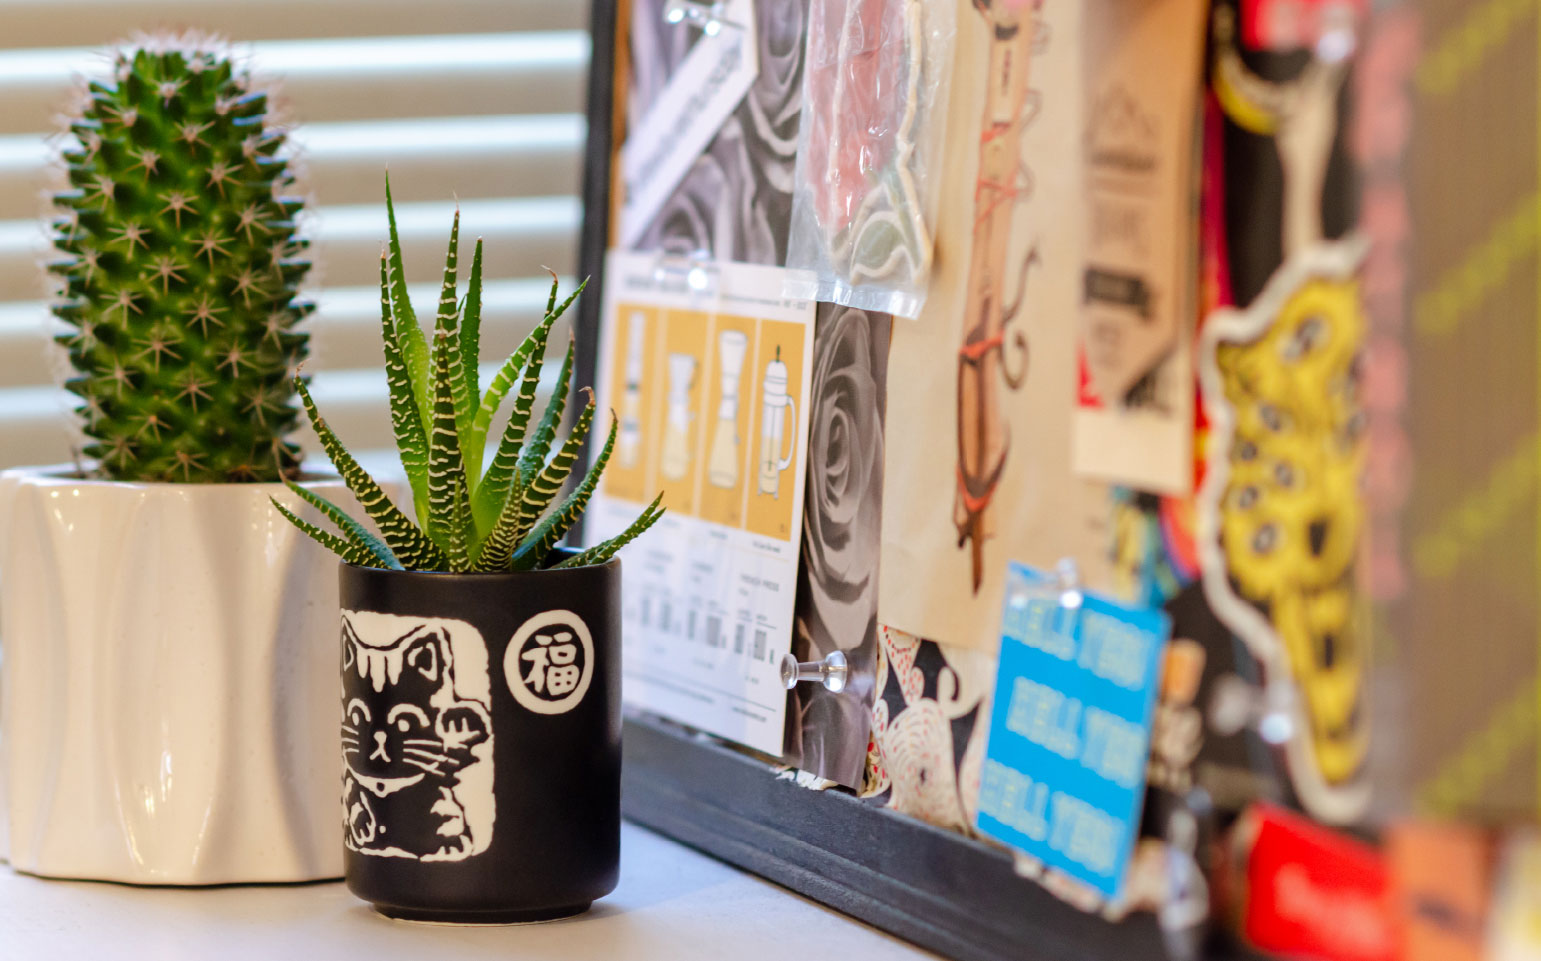 Office plants and a pin up board